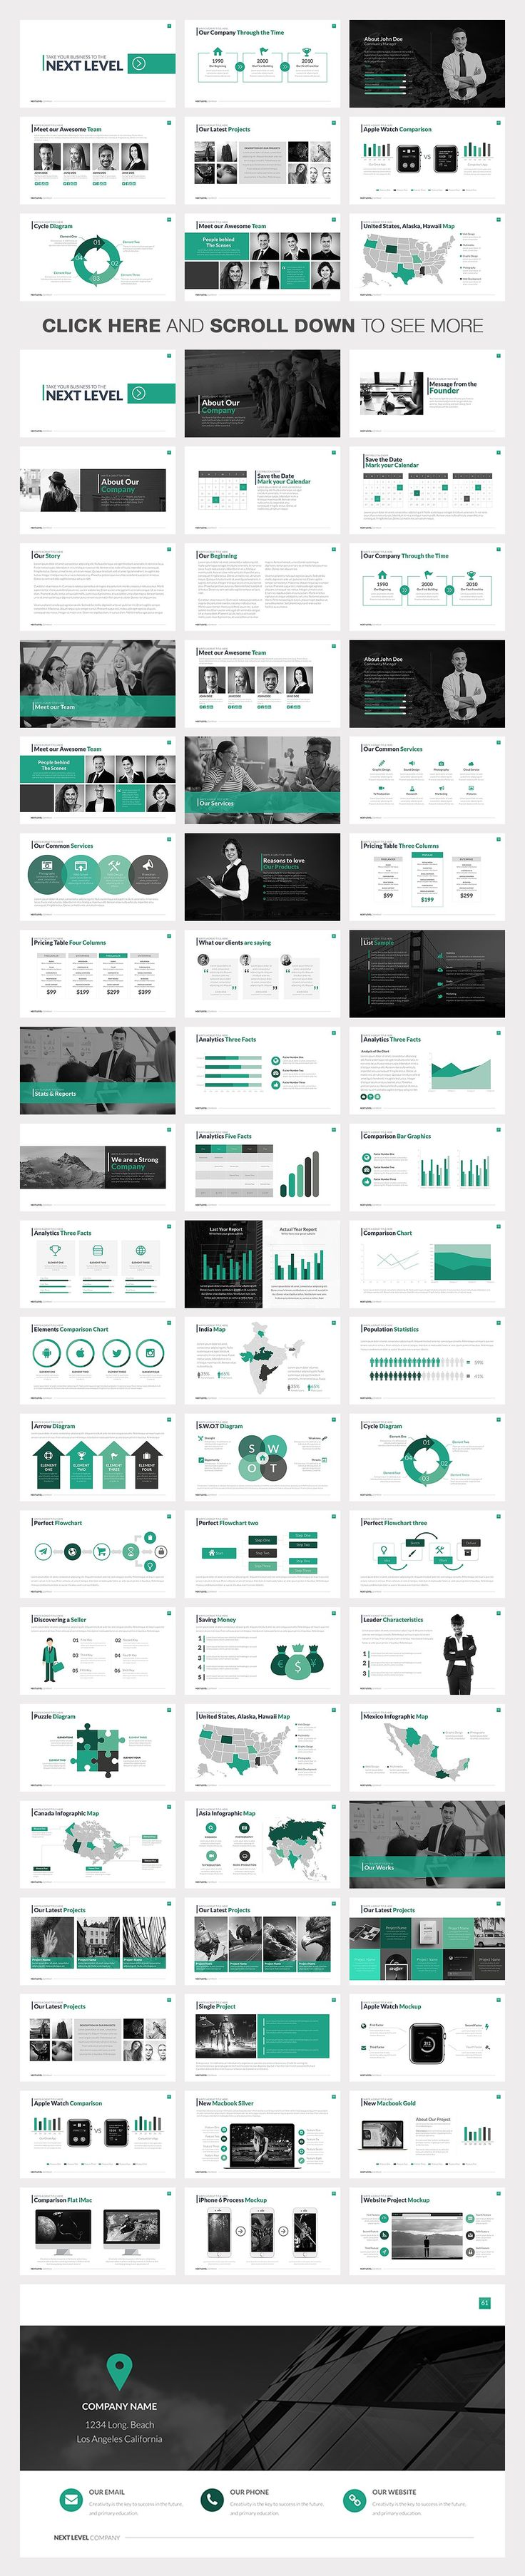 Next Level Powerpoint Template by Slidedizer on @creativemarket